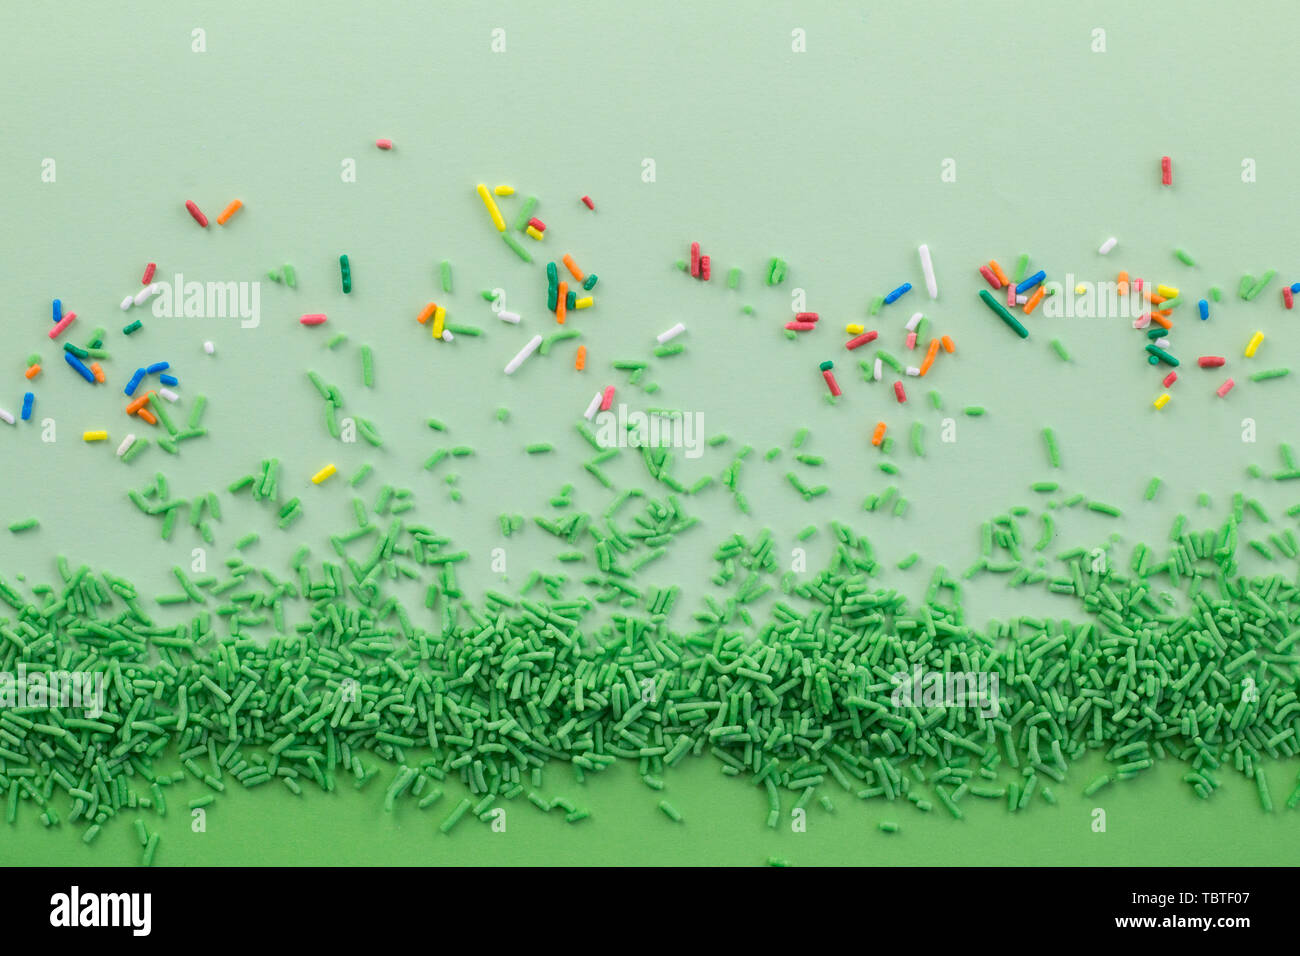 Green sprinkles on two tone green background with multi coloured sprinkles scattered - Cake topping sprinkles green background with space for text - Stock Image